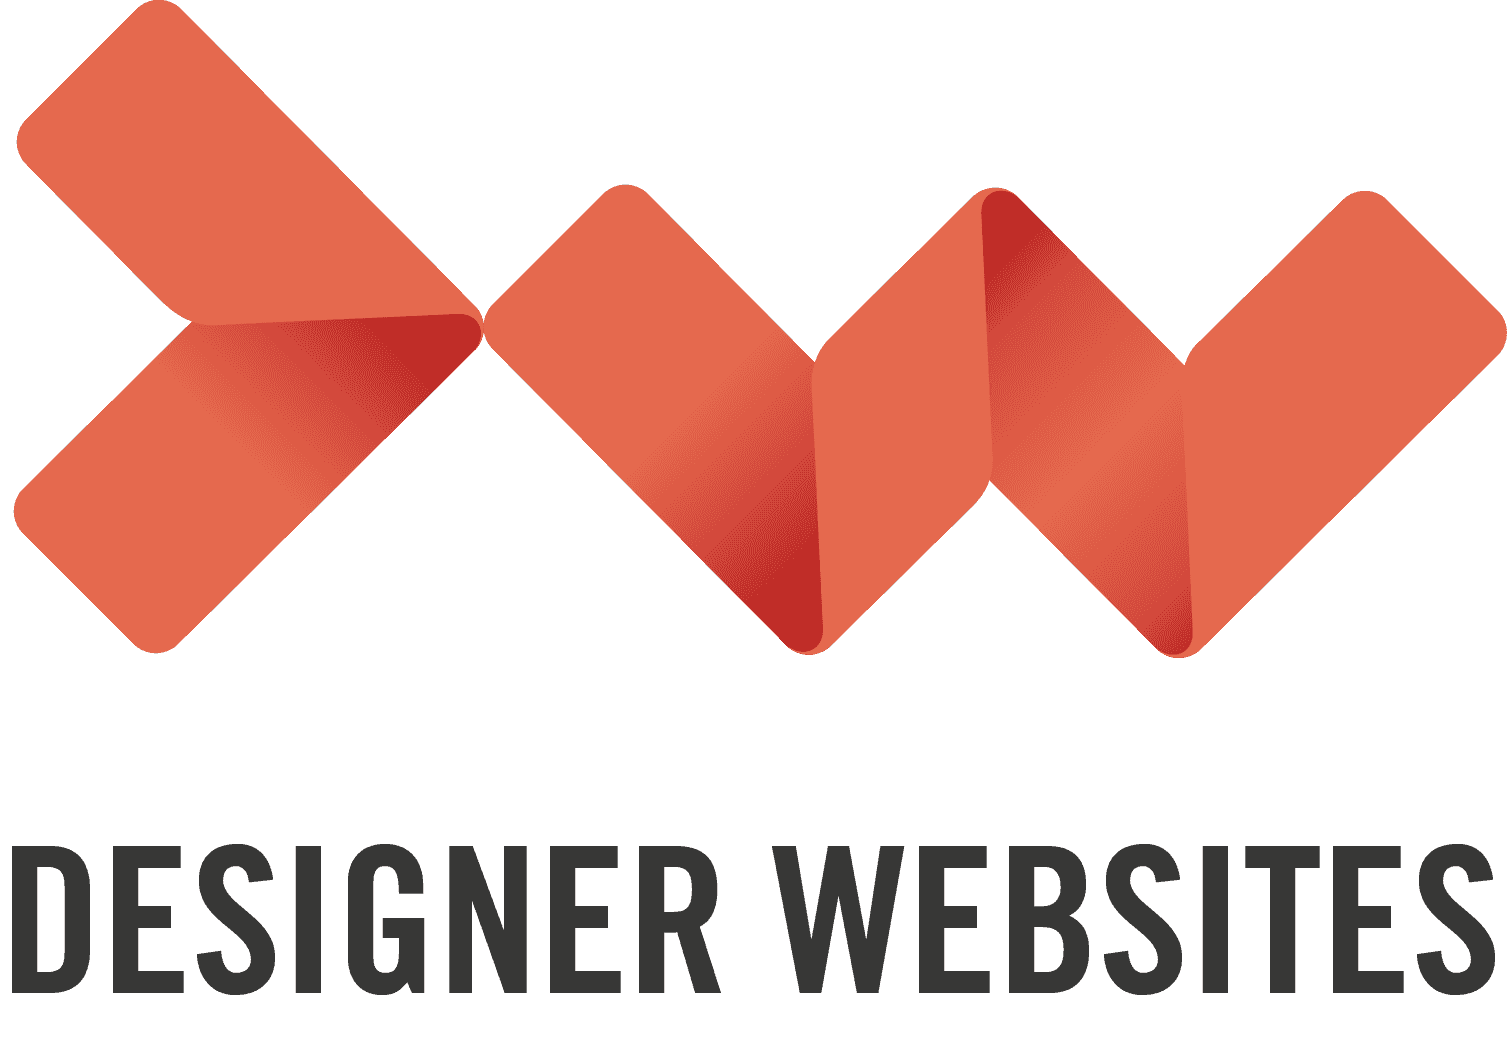 Let us introduce ourselves. We are Designer Websites and we're here ...